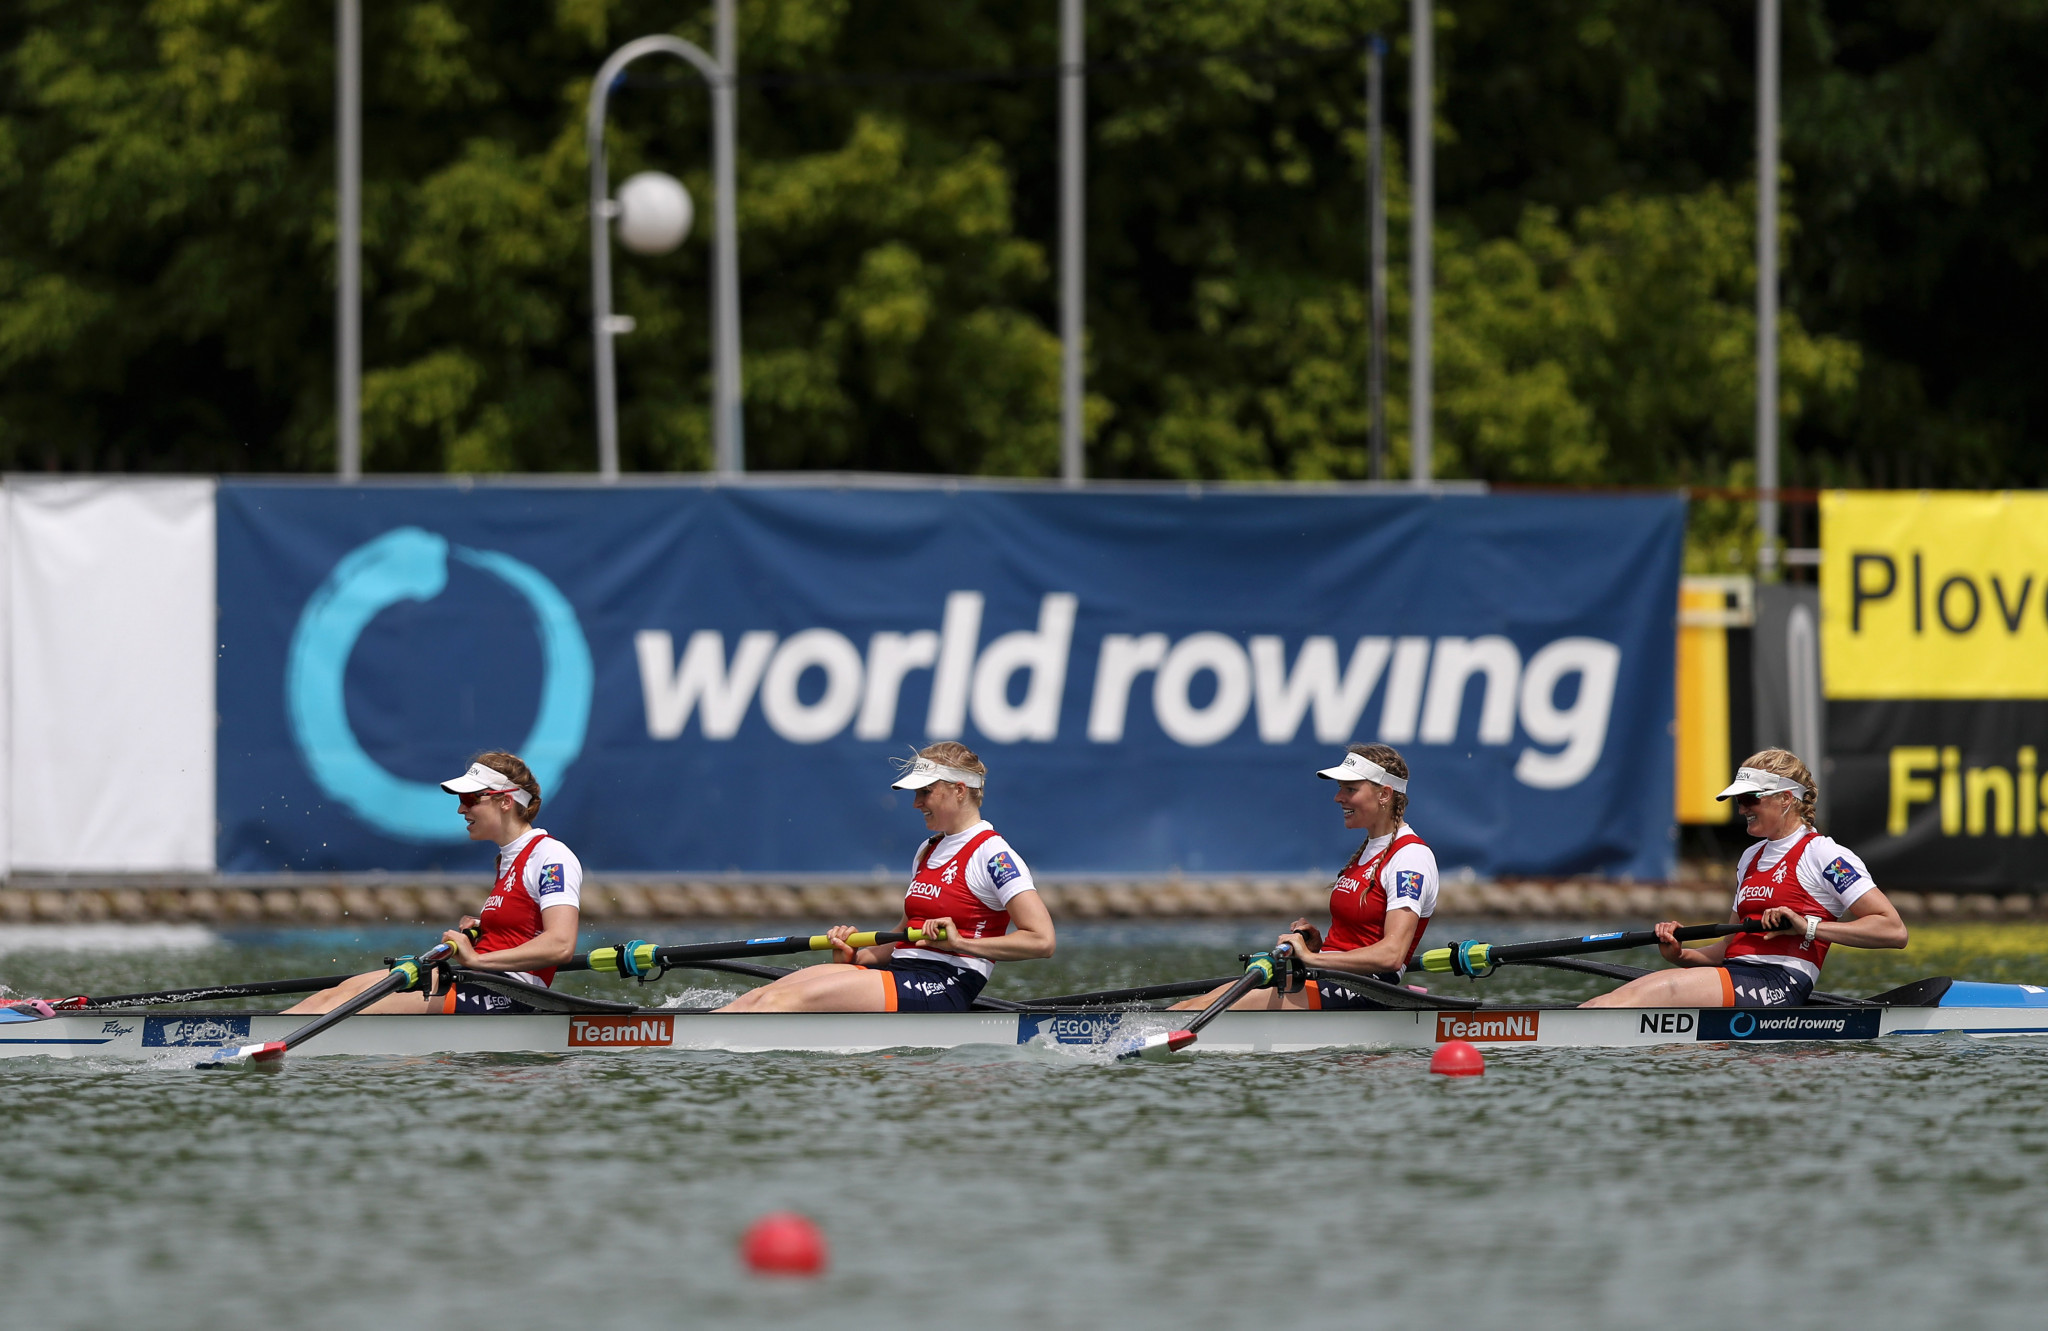 FISA has cancelled an Asia and Oceania Olympic and Paralympic qualification rowing regatta and the Olympic solidarity training camp, both in South Korea, because of the coronavirus outbreak ©Getty Images